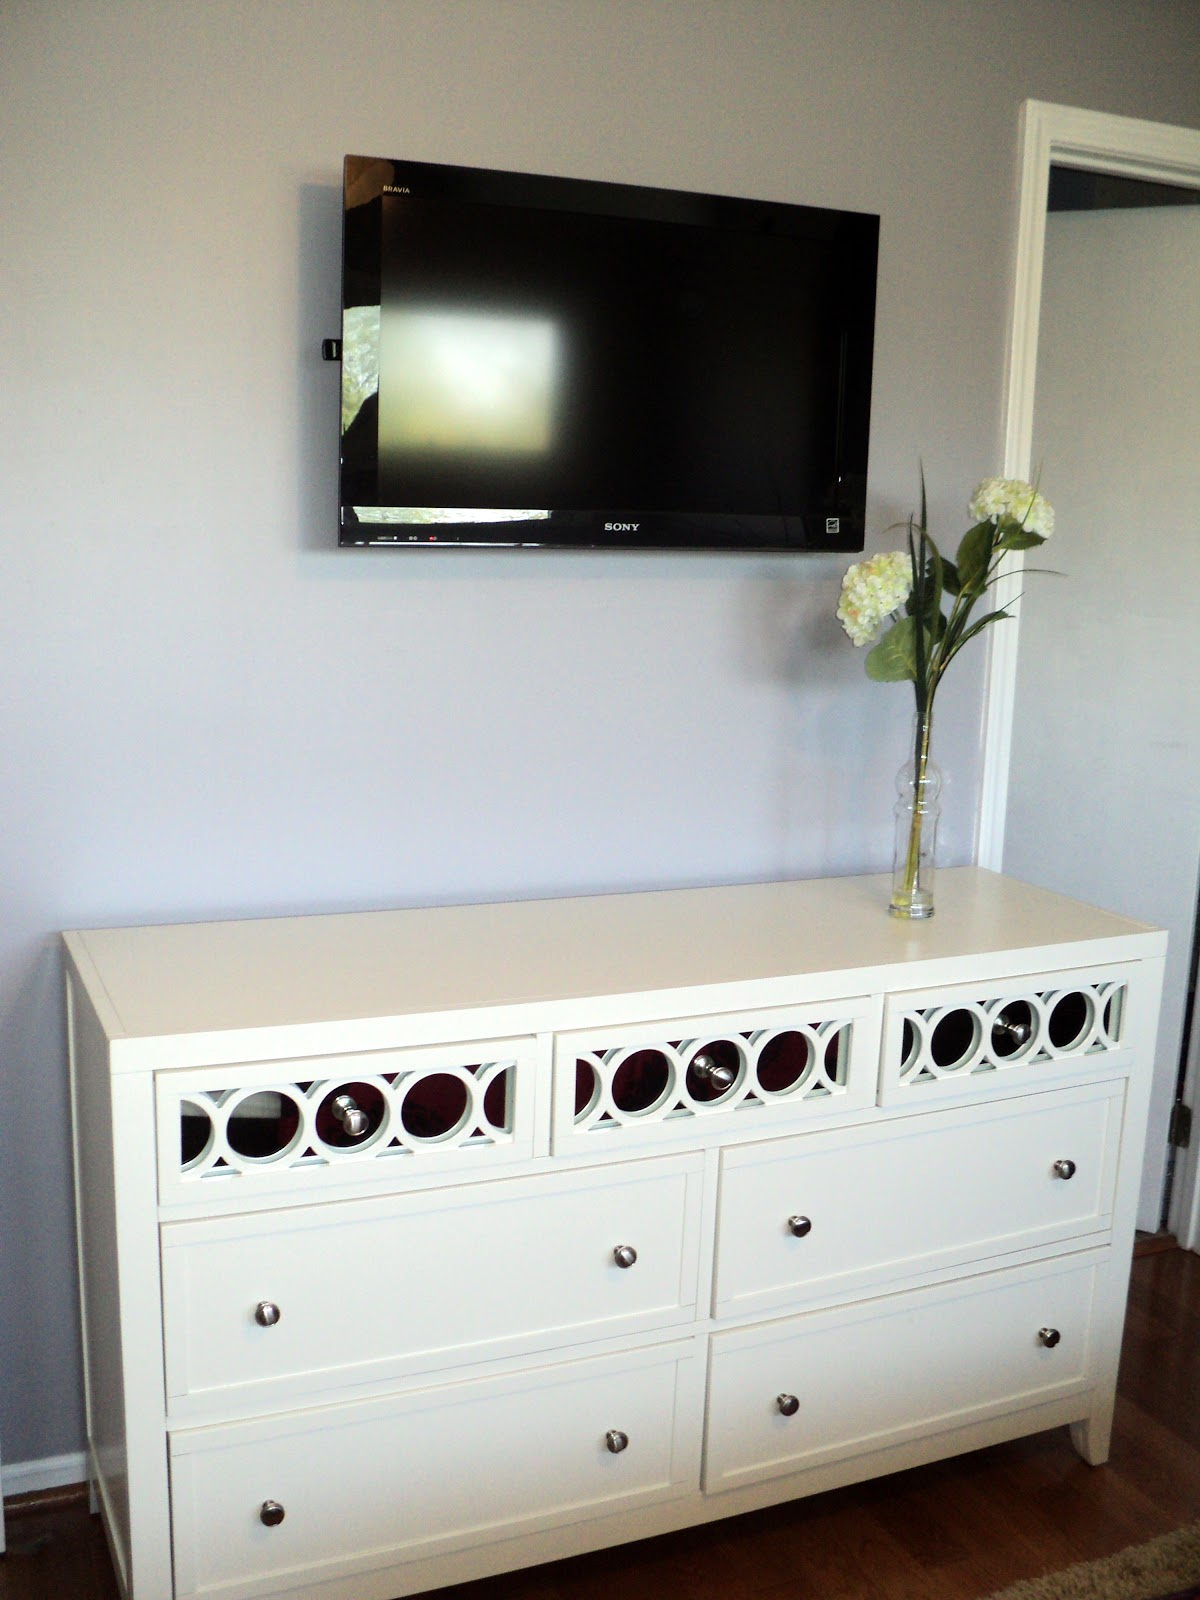 shoestring sophistication: DIY Mirrored Furniture Anyone?